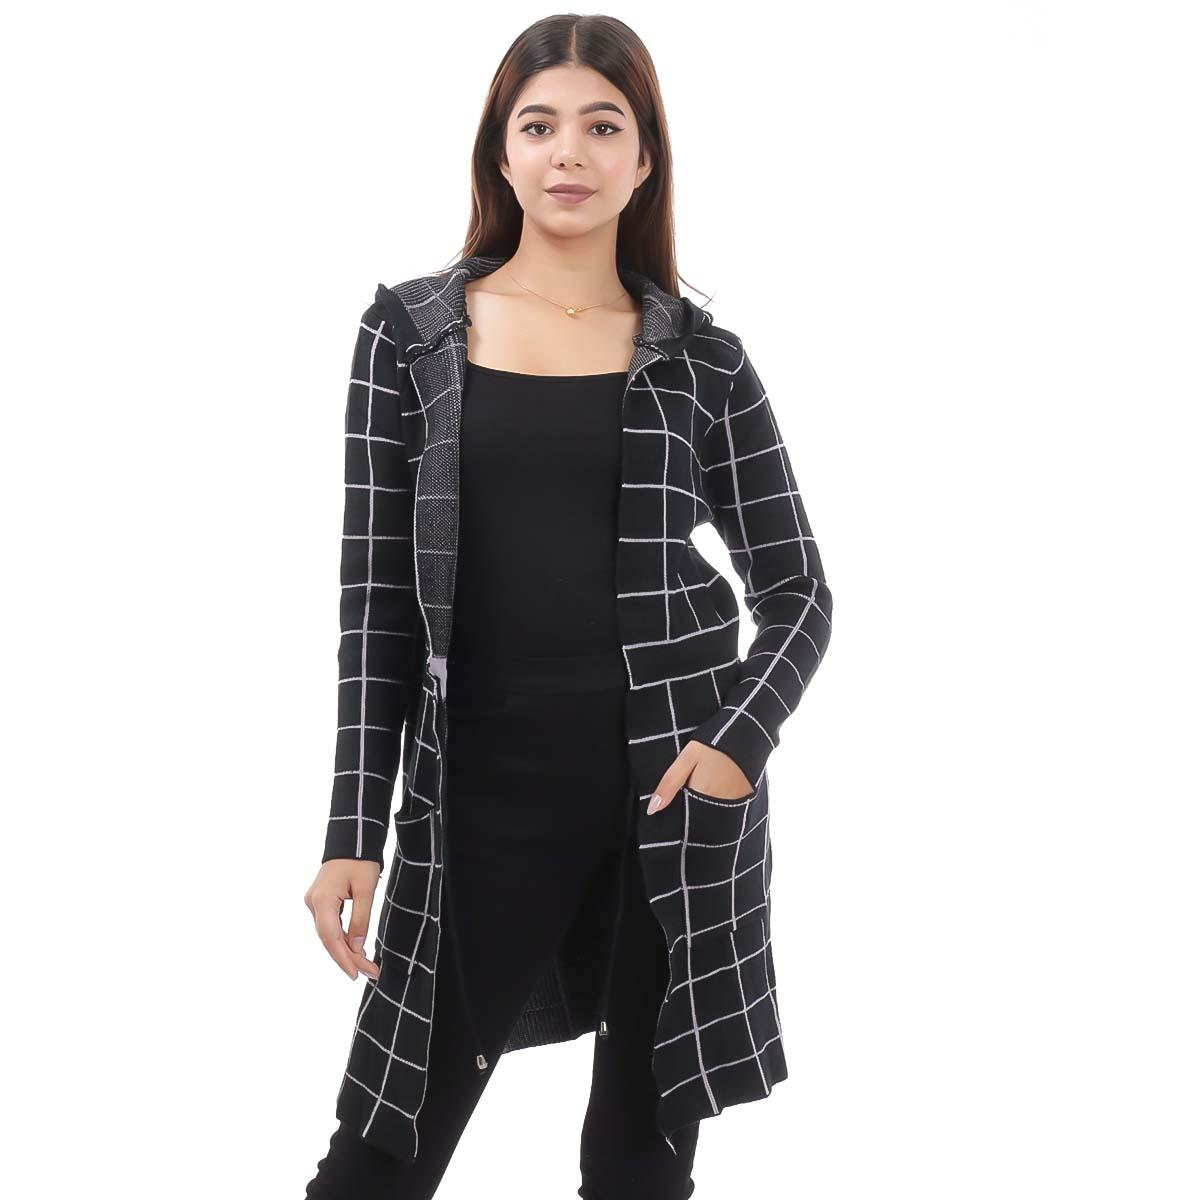 Black Check Long Outer Coat For Women By Nepster LCOAT-5